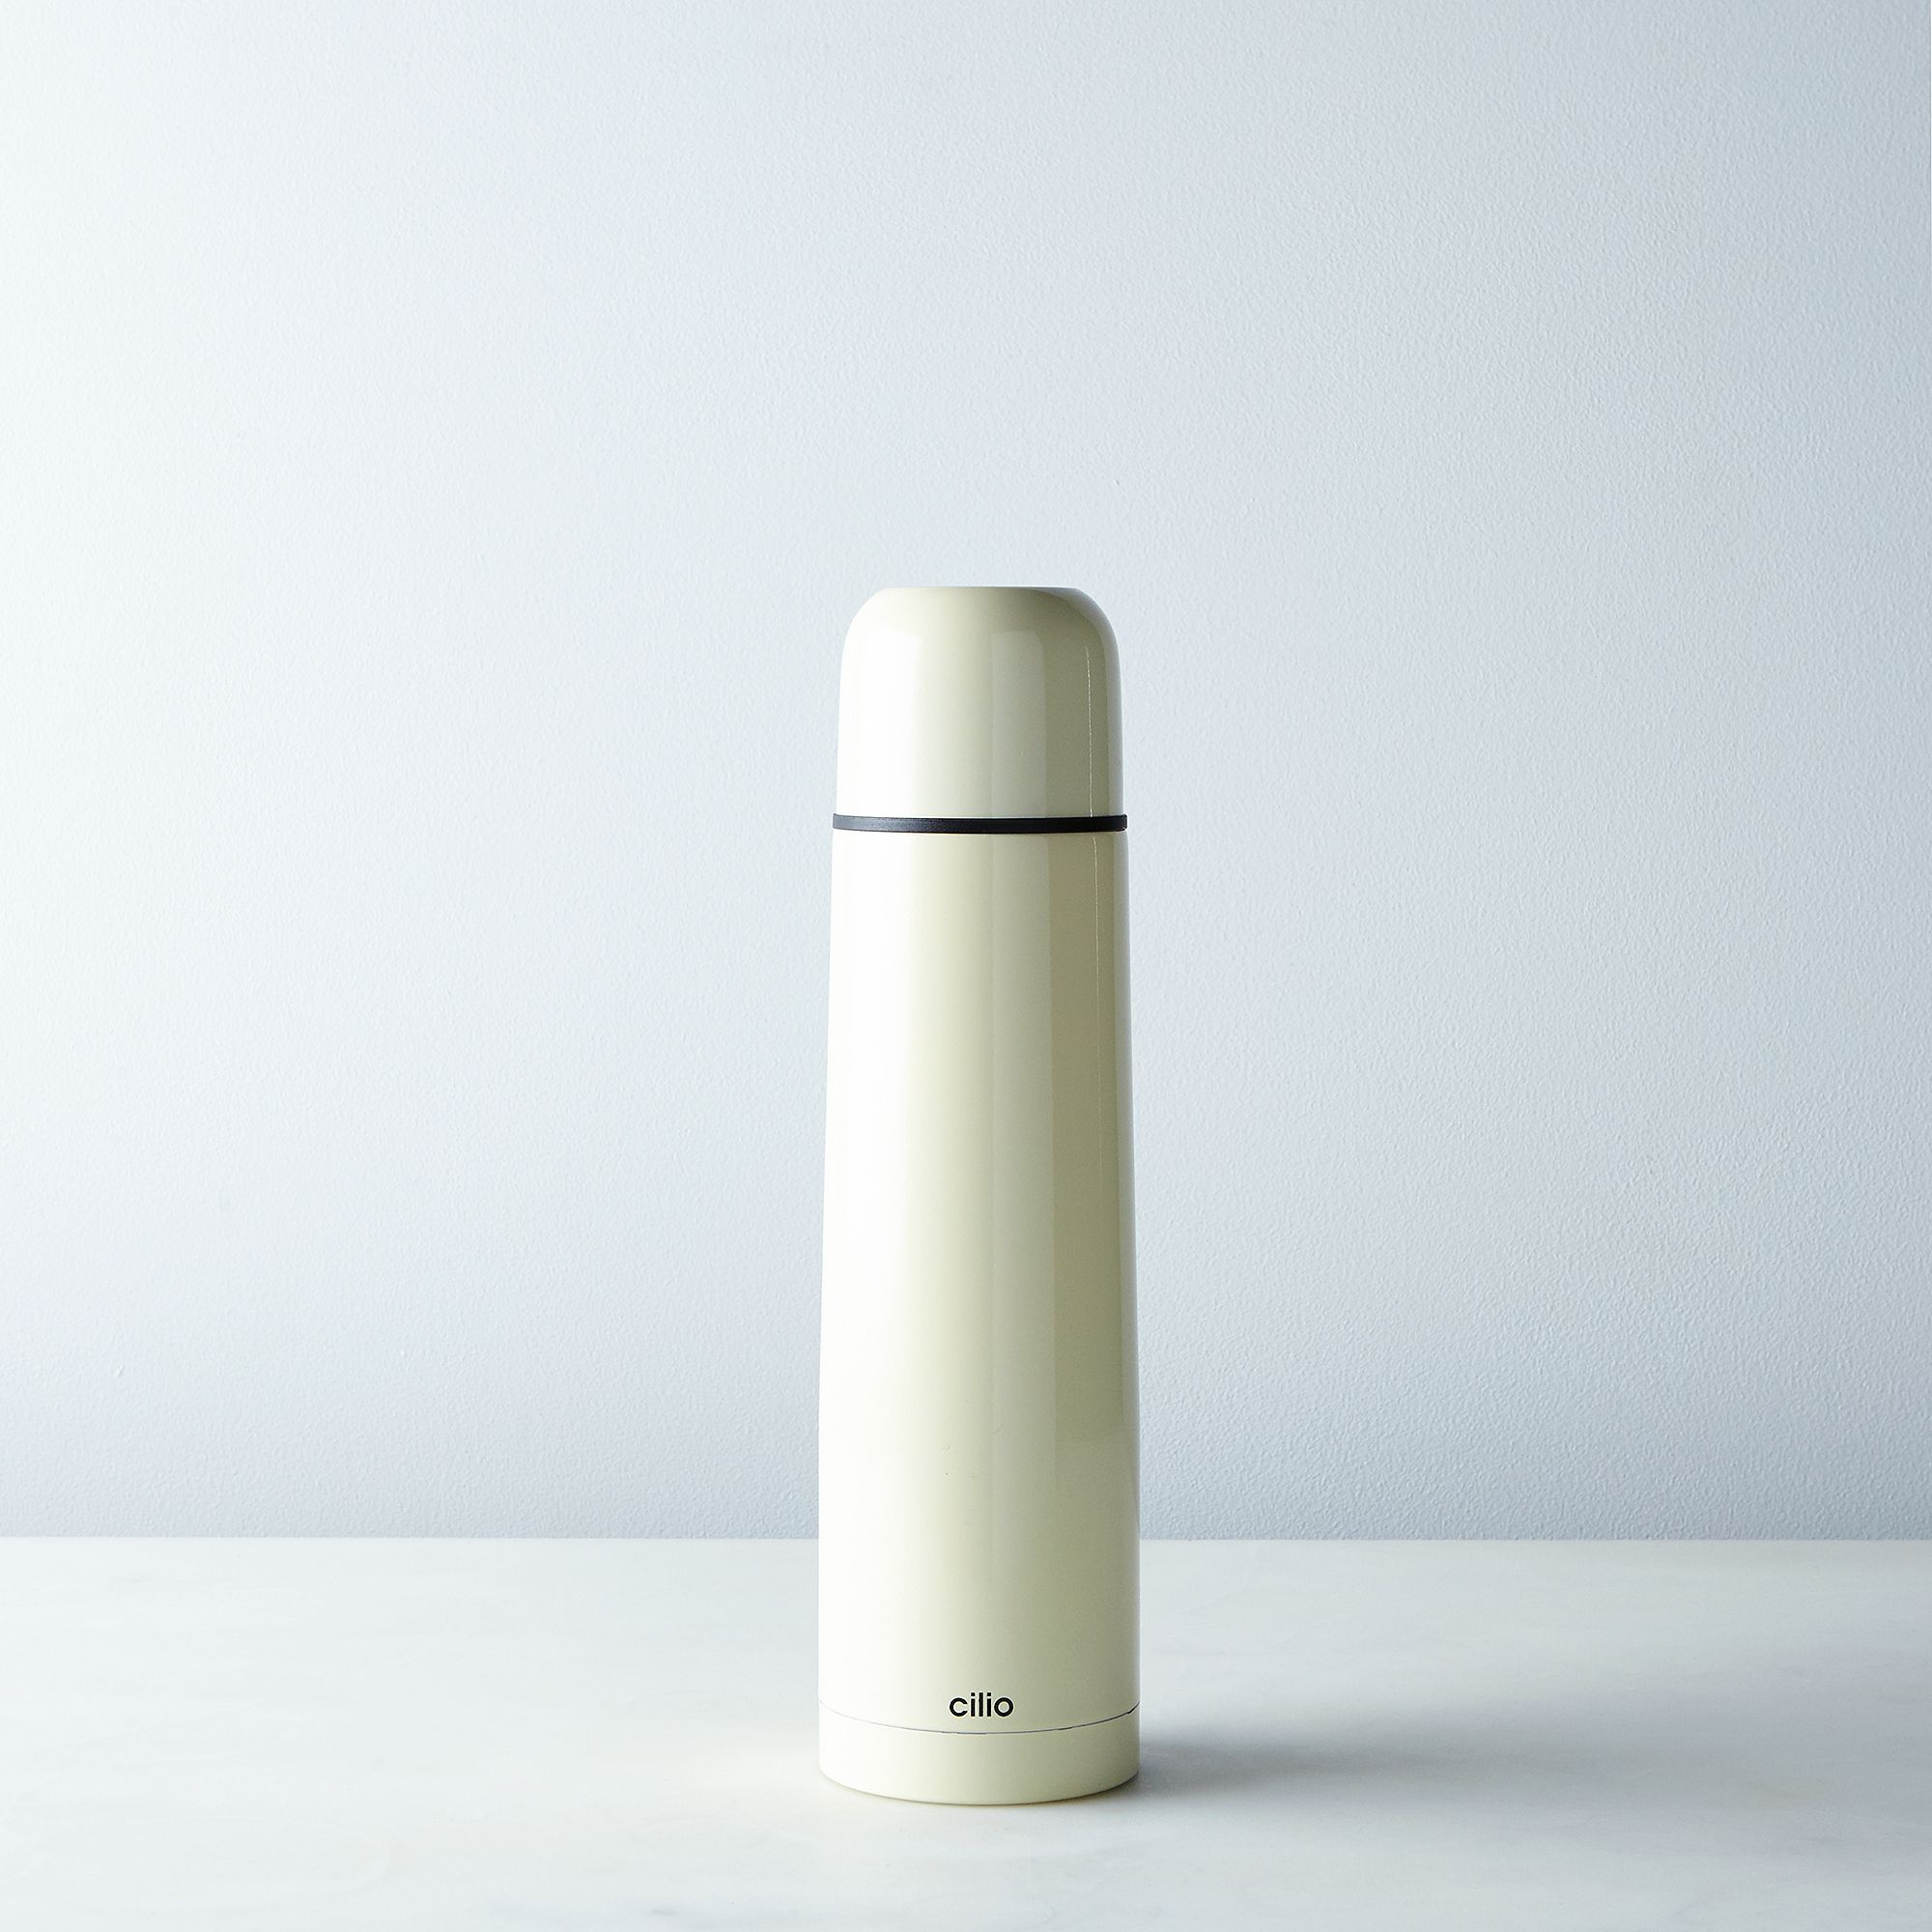 Beb4a23c a0f8 11e5 a190 0ef7535729df  2015 0729 frieling insulated travel bottle small cream silo rocky luten 001